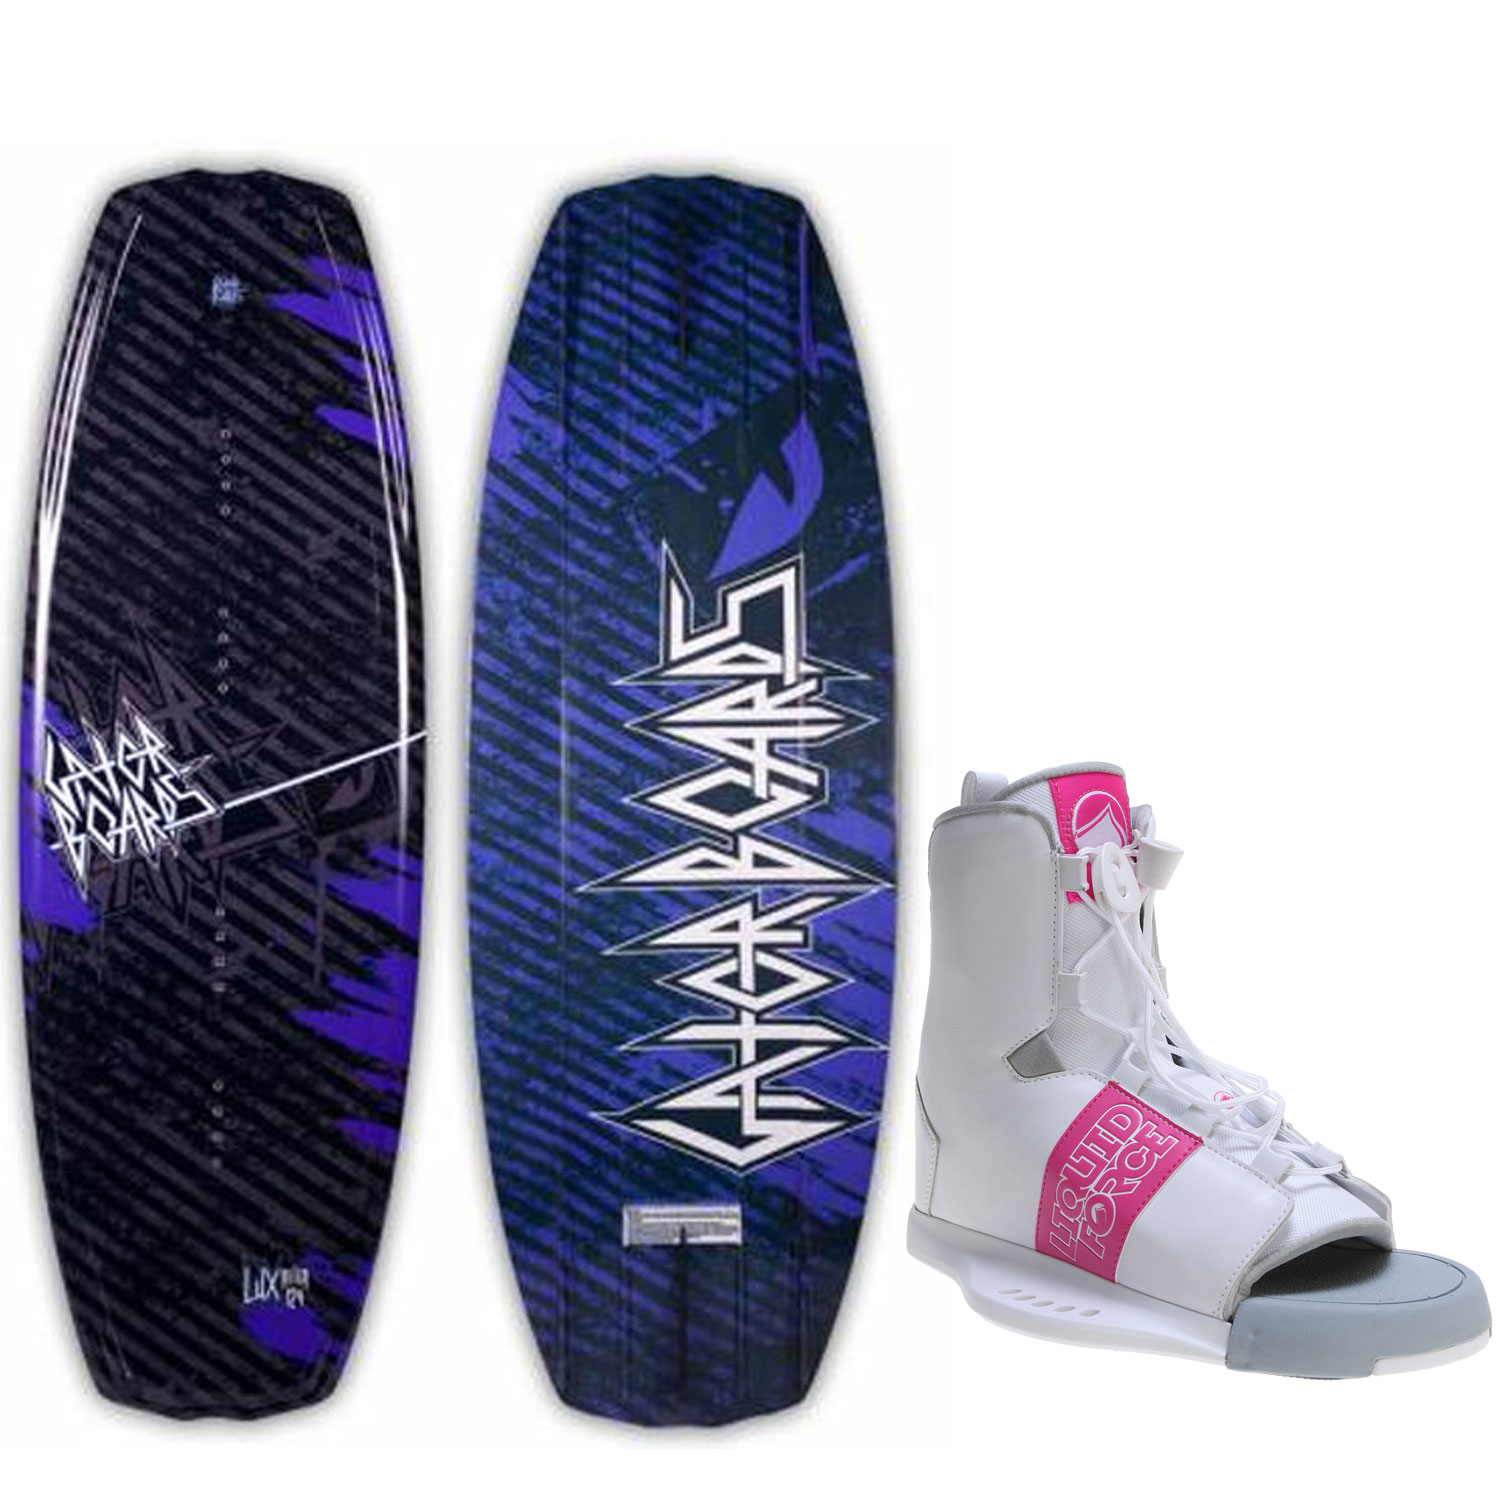 Click here to buy Gator Boards Lux Wakeboard 124 Womens + Liquid Force Alpha Bindings O S 6-10 by Gator Boards.